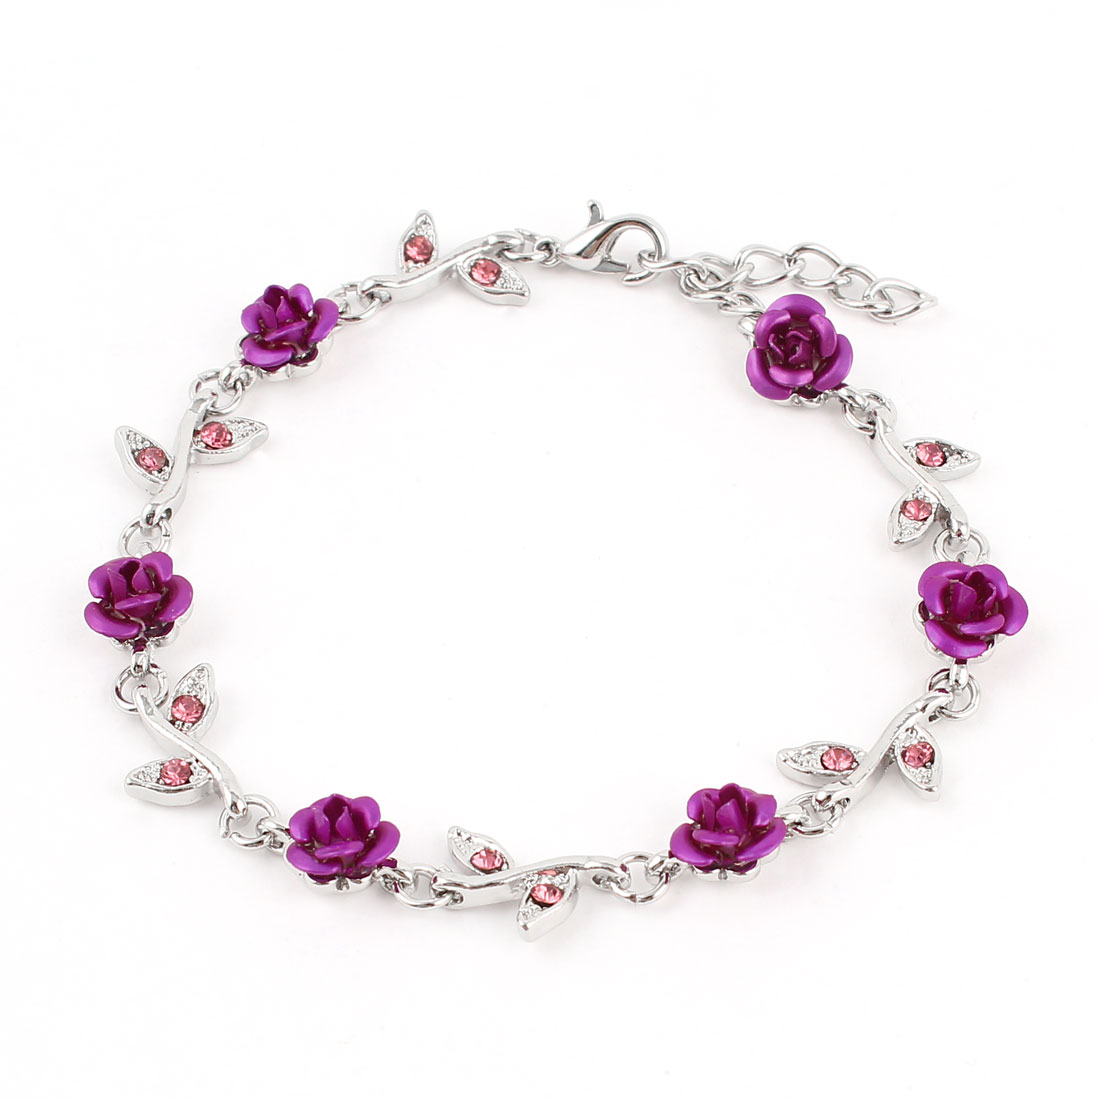 Lady Lobster Hook Rose Decor Adjustable Chain Wrist Bracelet Fuchsia Silver Tone